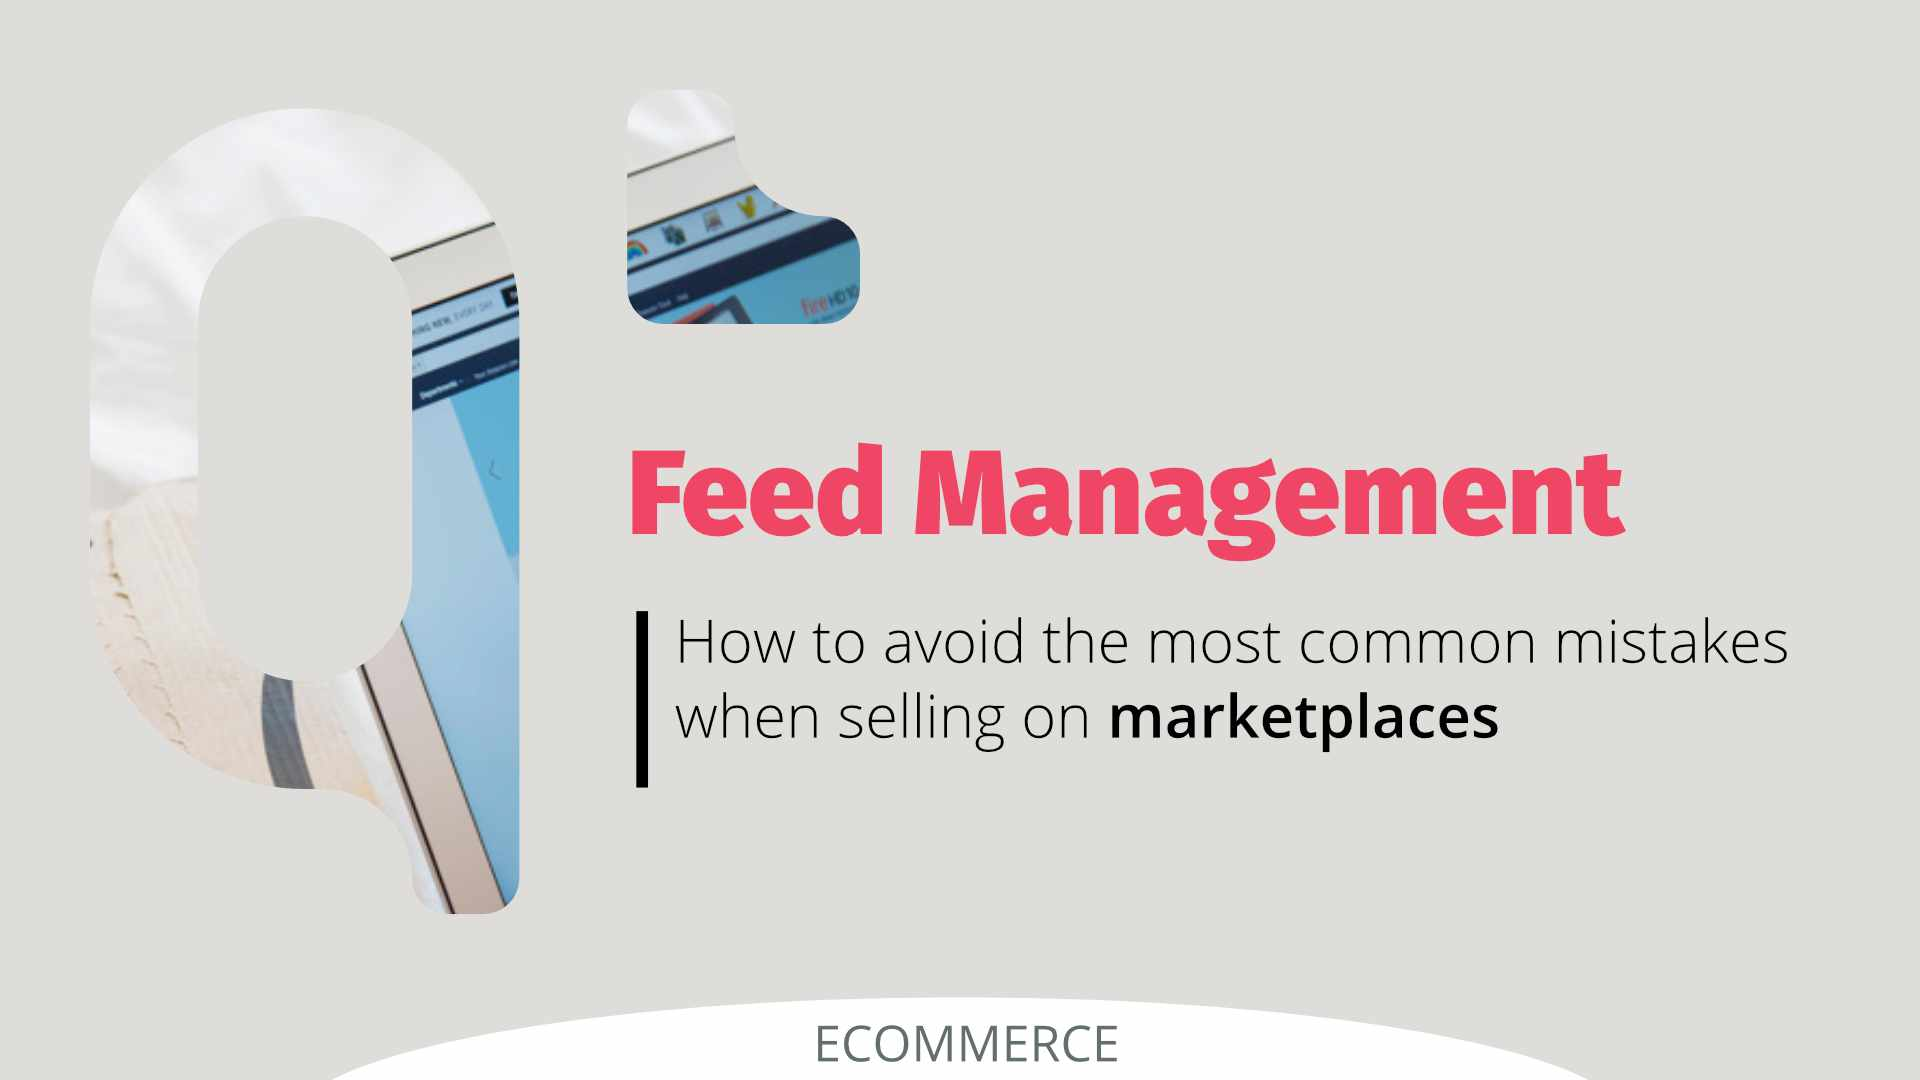 Feed management EN